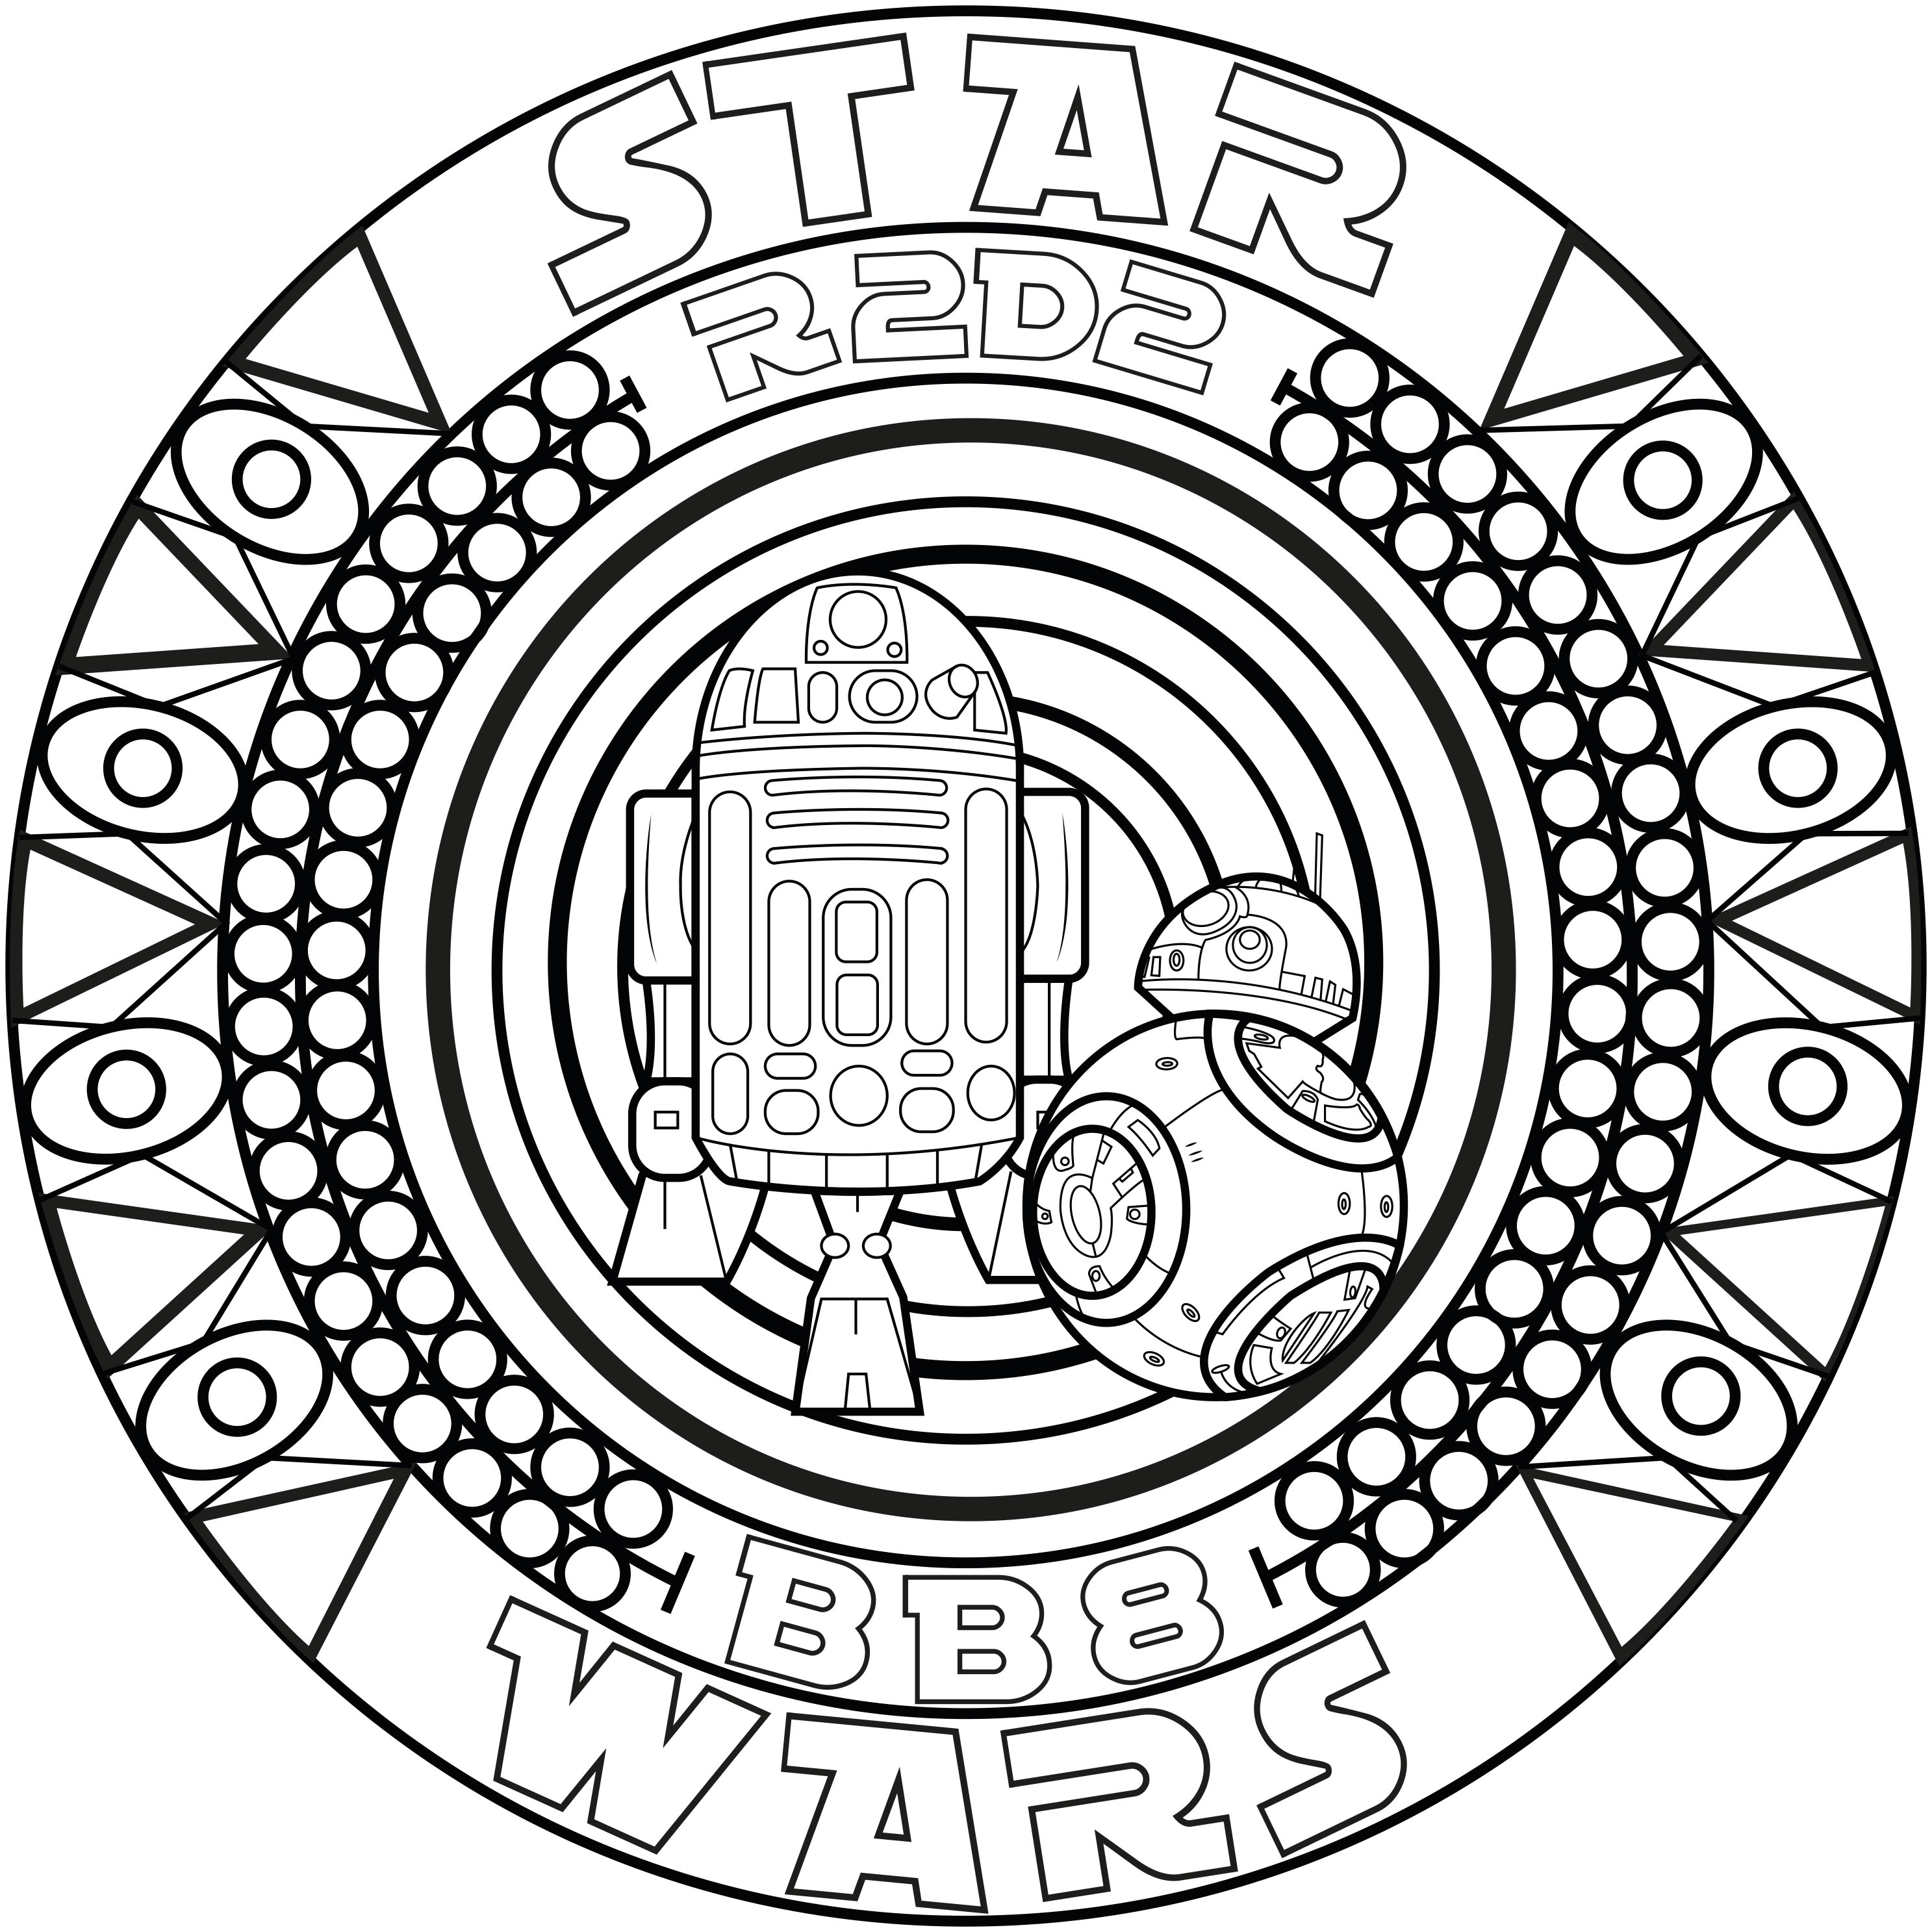 Coloring page adult mandala bb8 r2d2 by allan